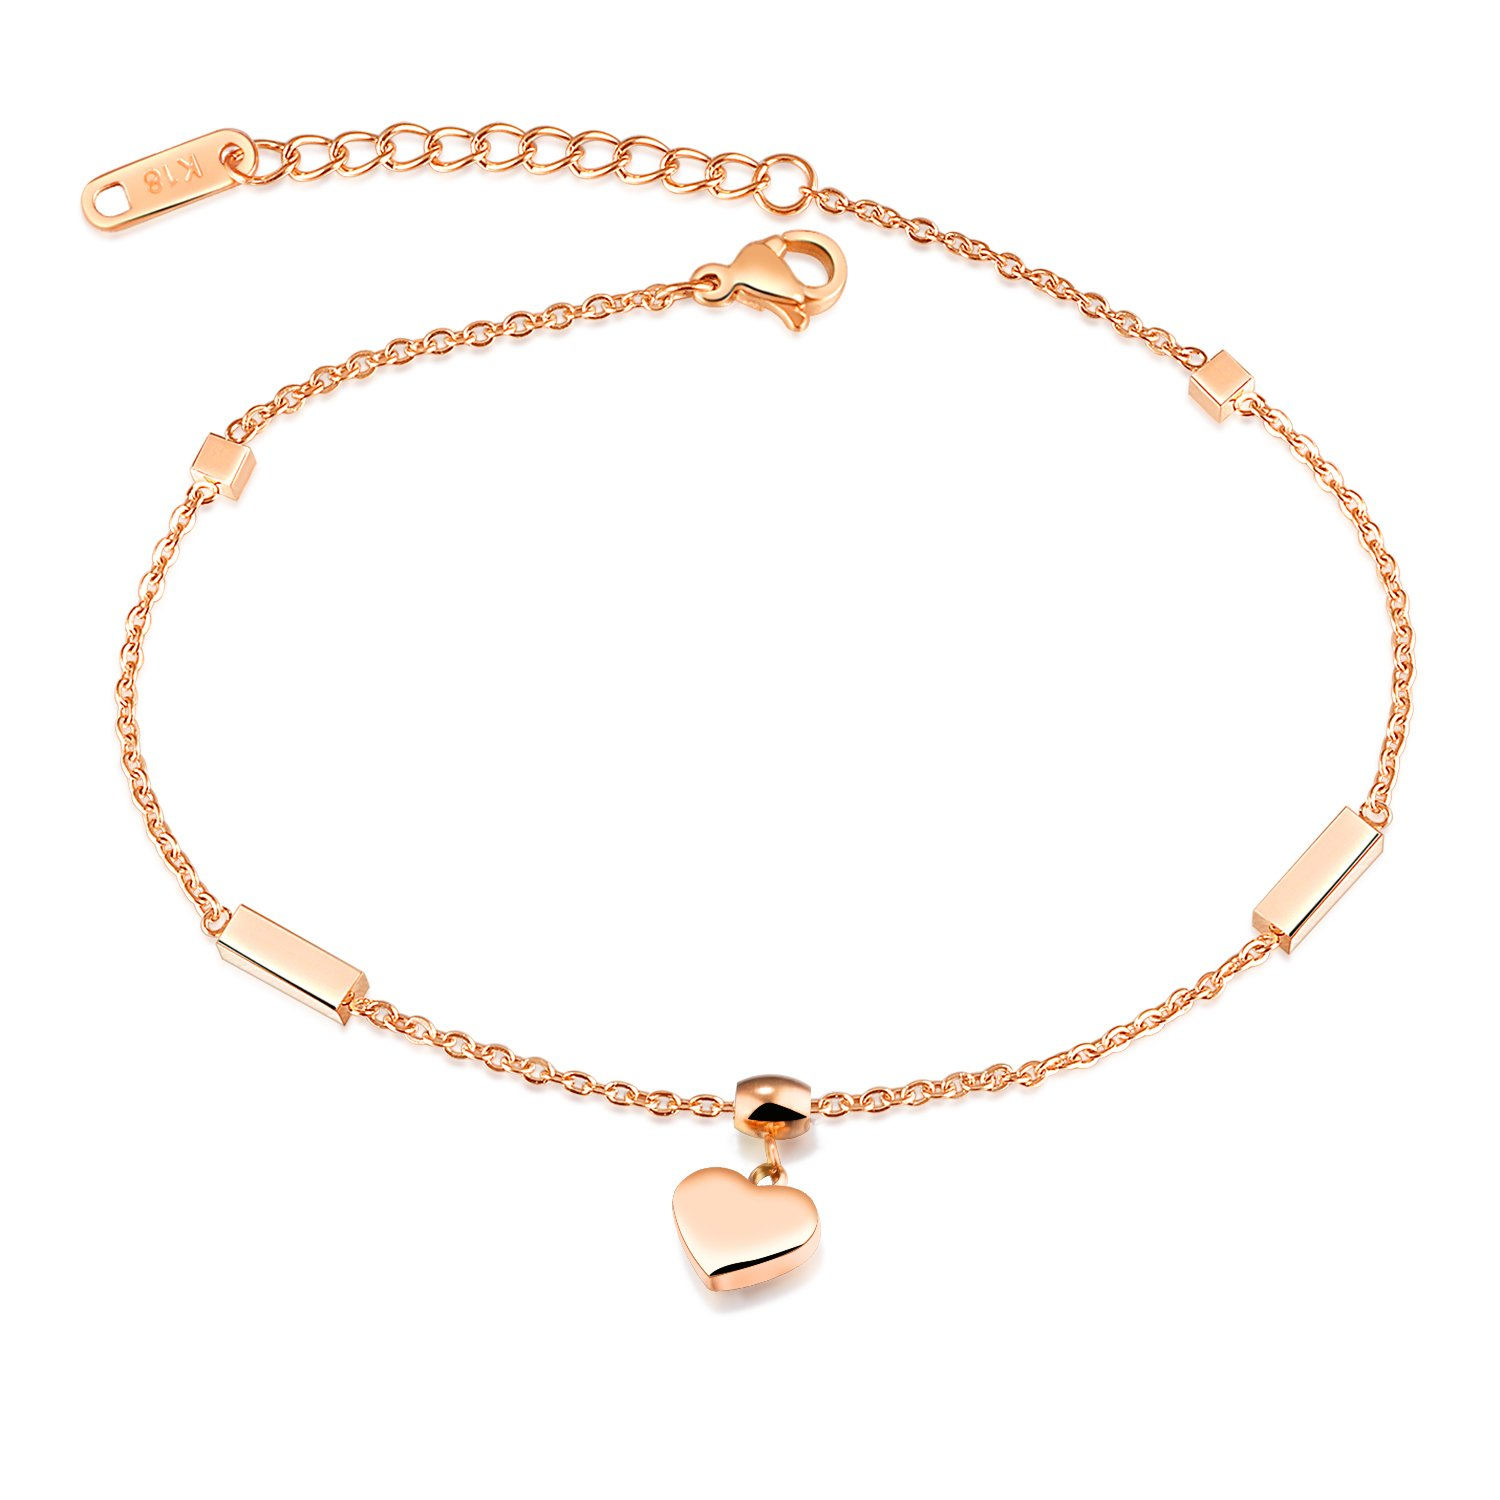 LOHOME Fashion Aanklets Rose Gold Tone Heart Charm Foot Chain Aanklet for Women L8.3+2.1''